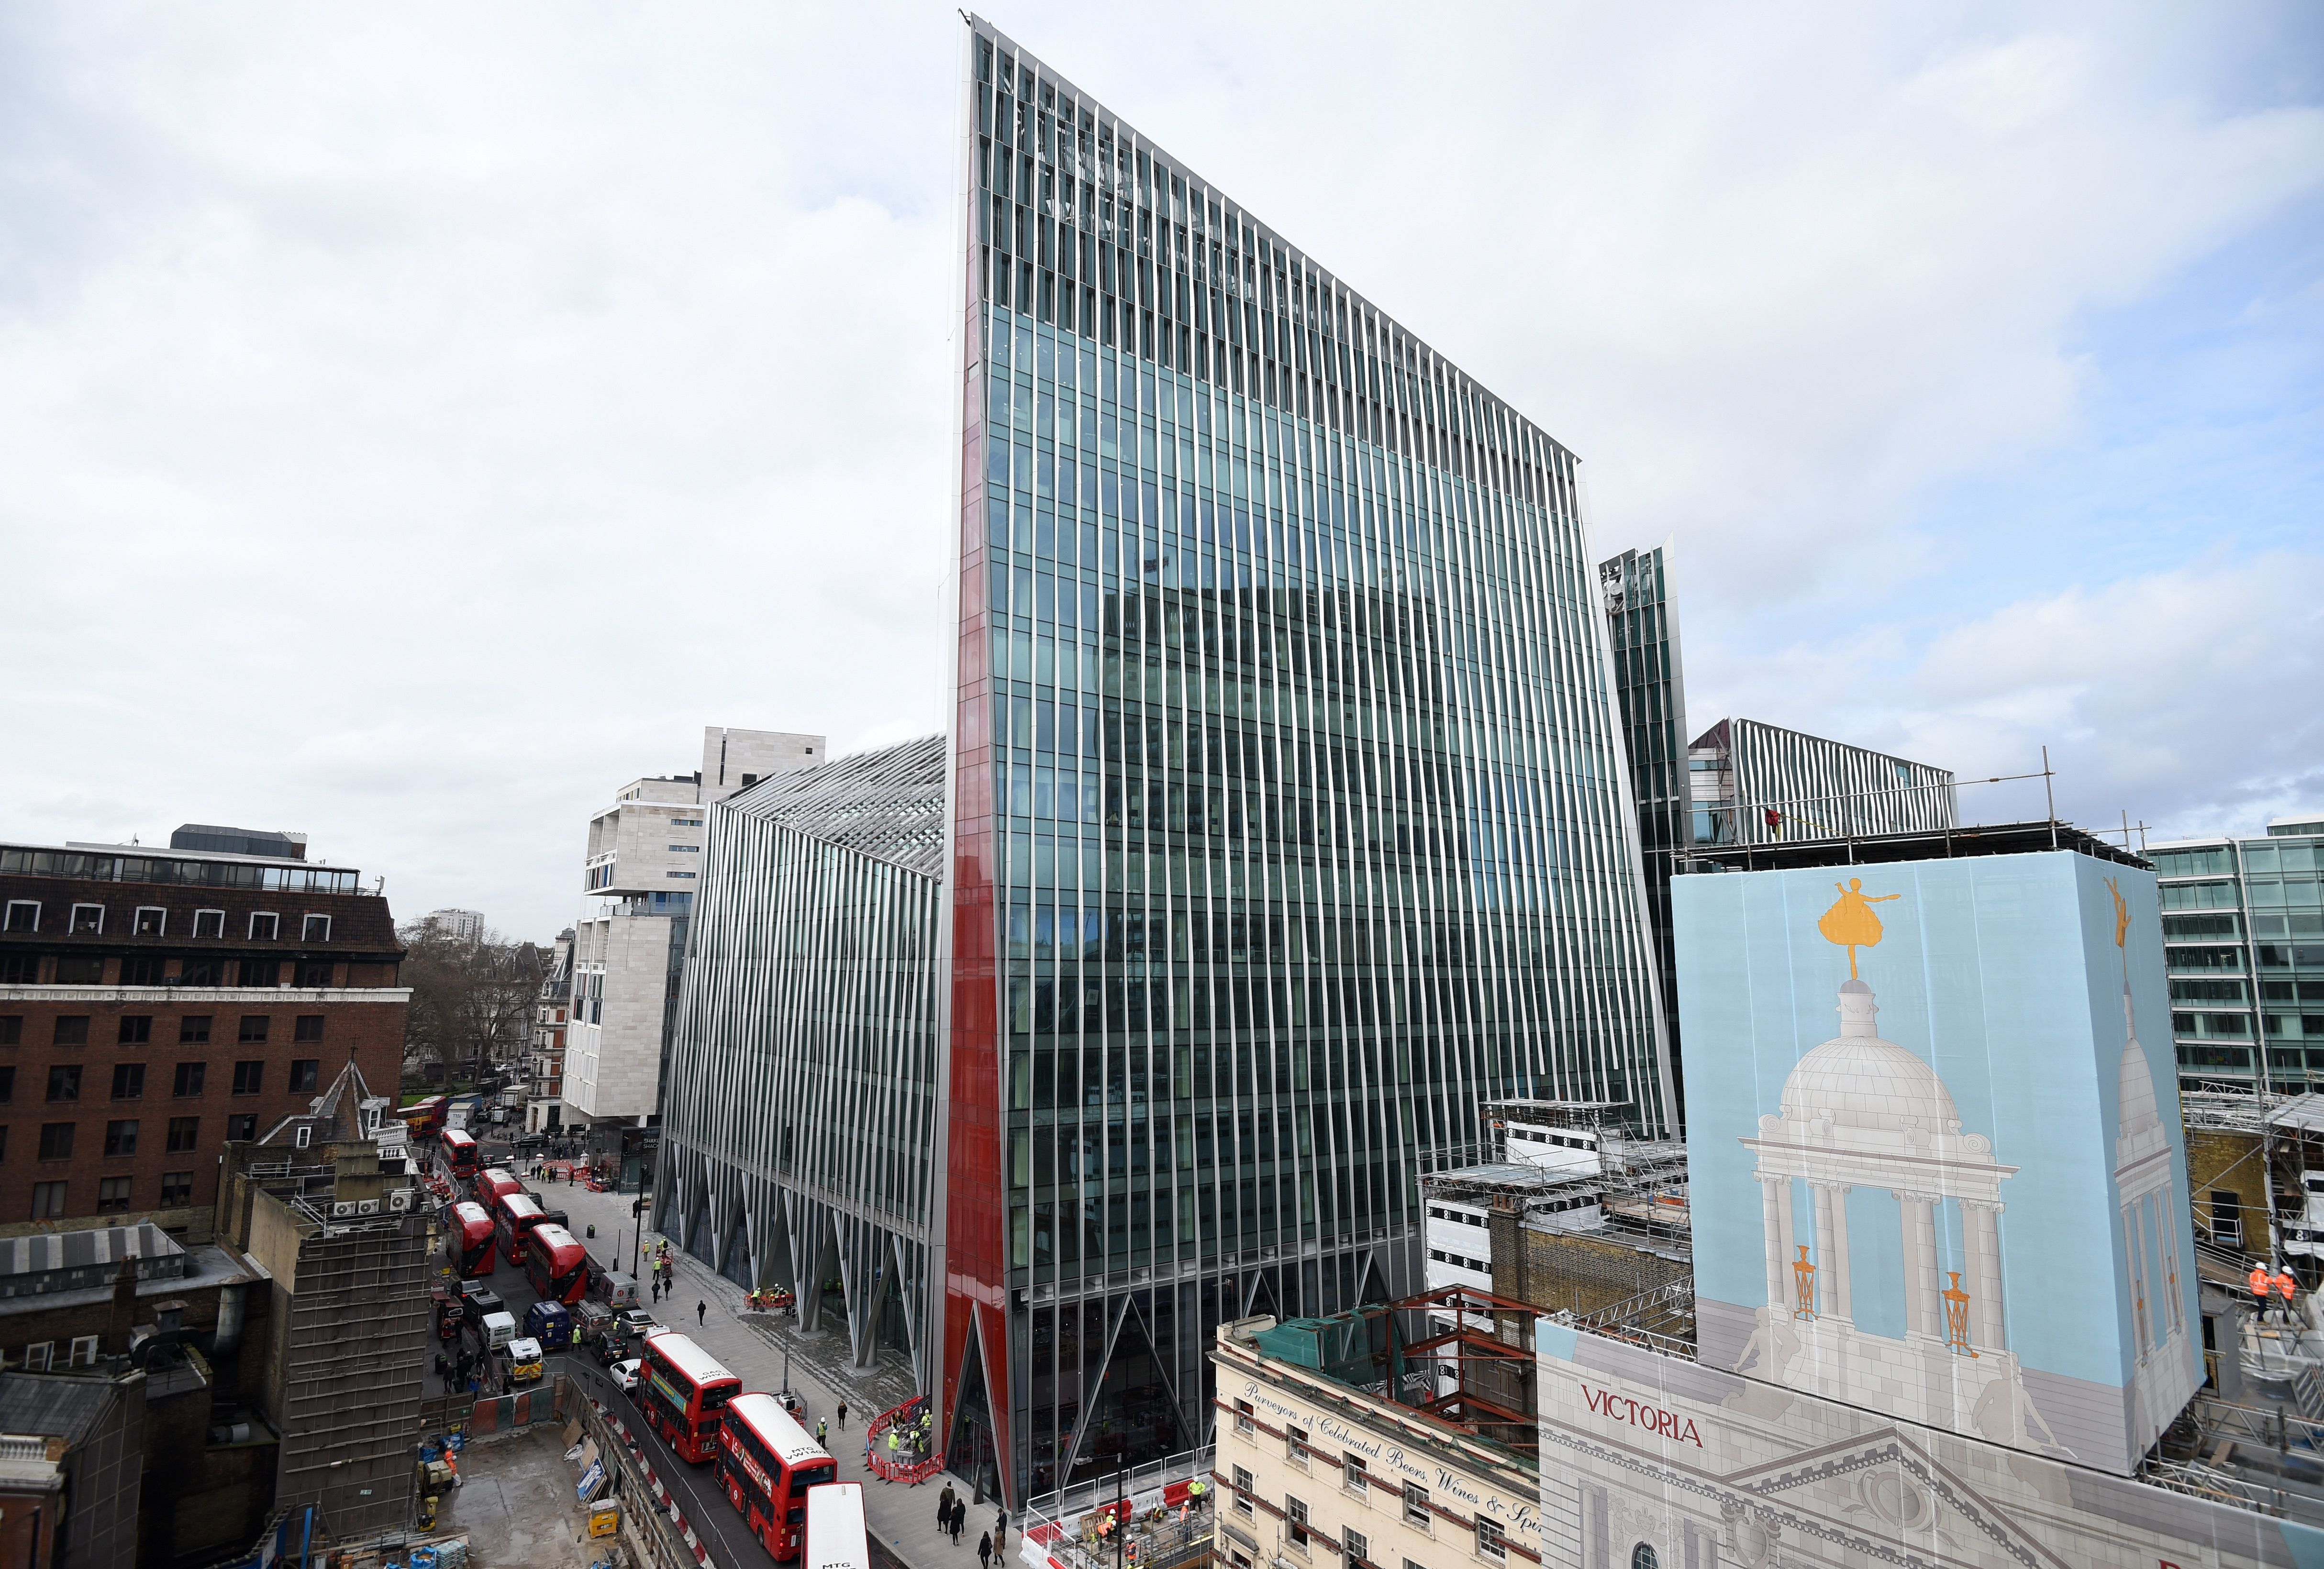 Britain's ugliest building 'assaults your senses as you leave the Tube station'